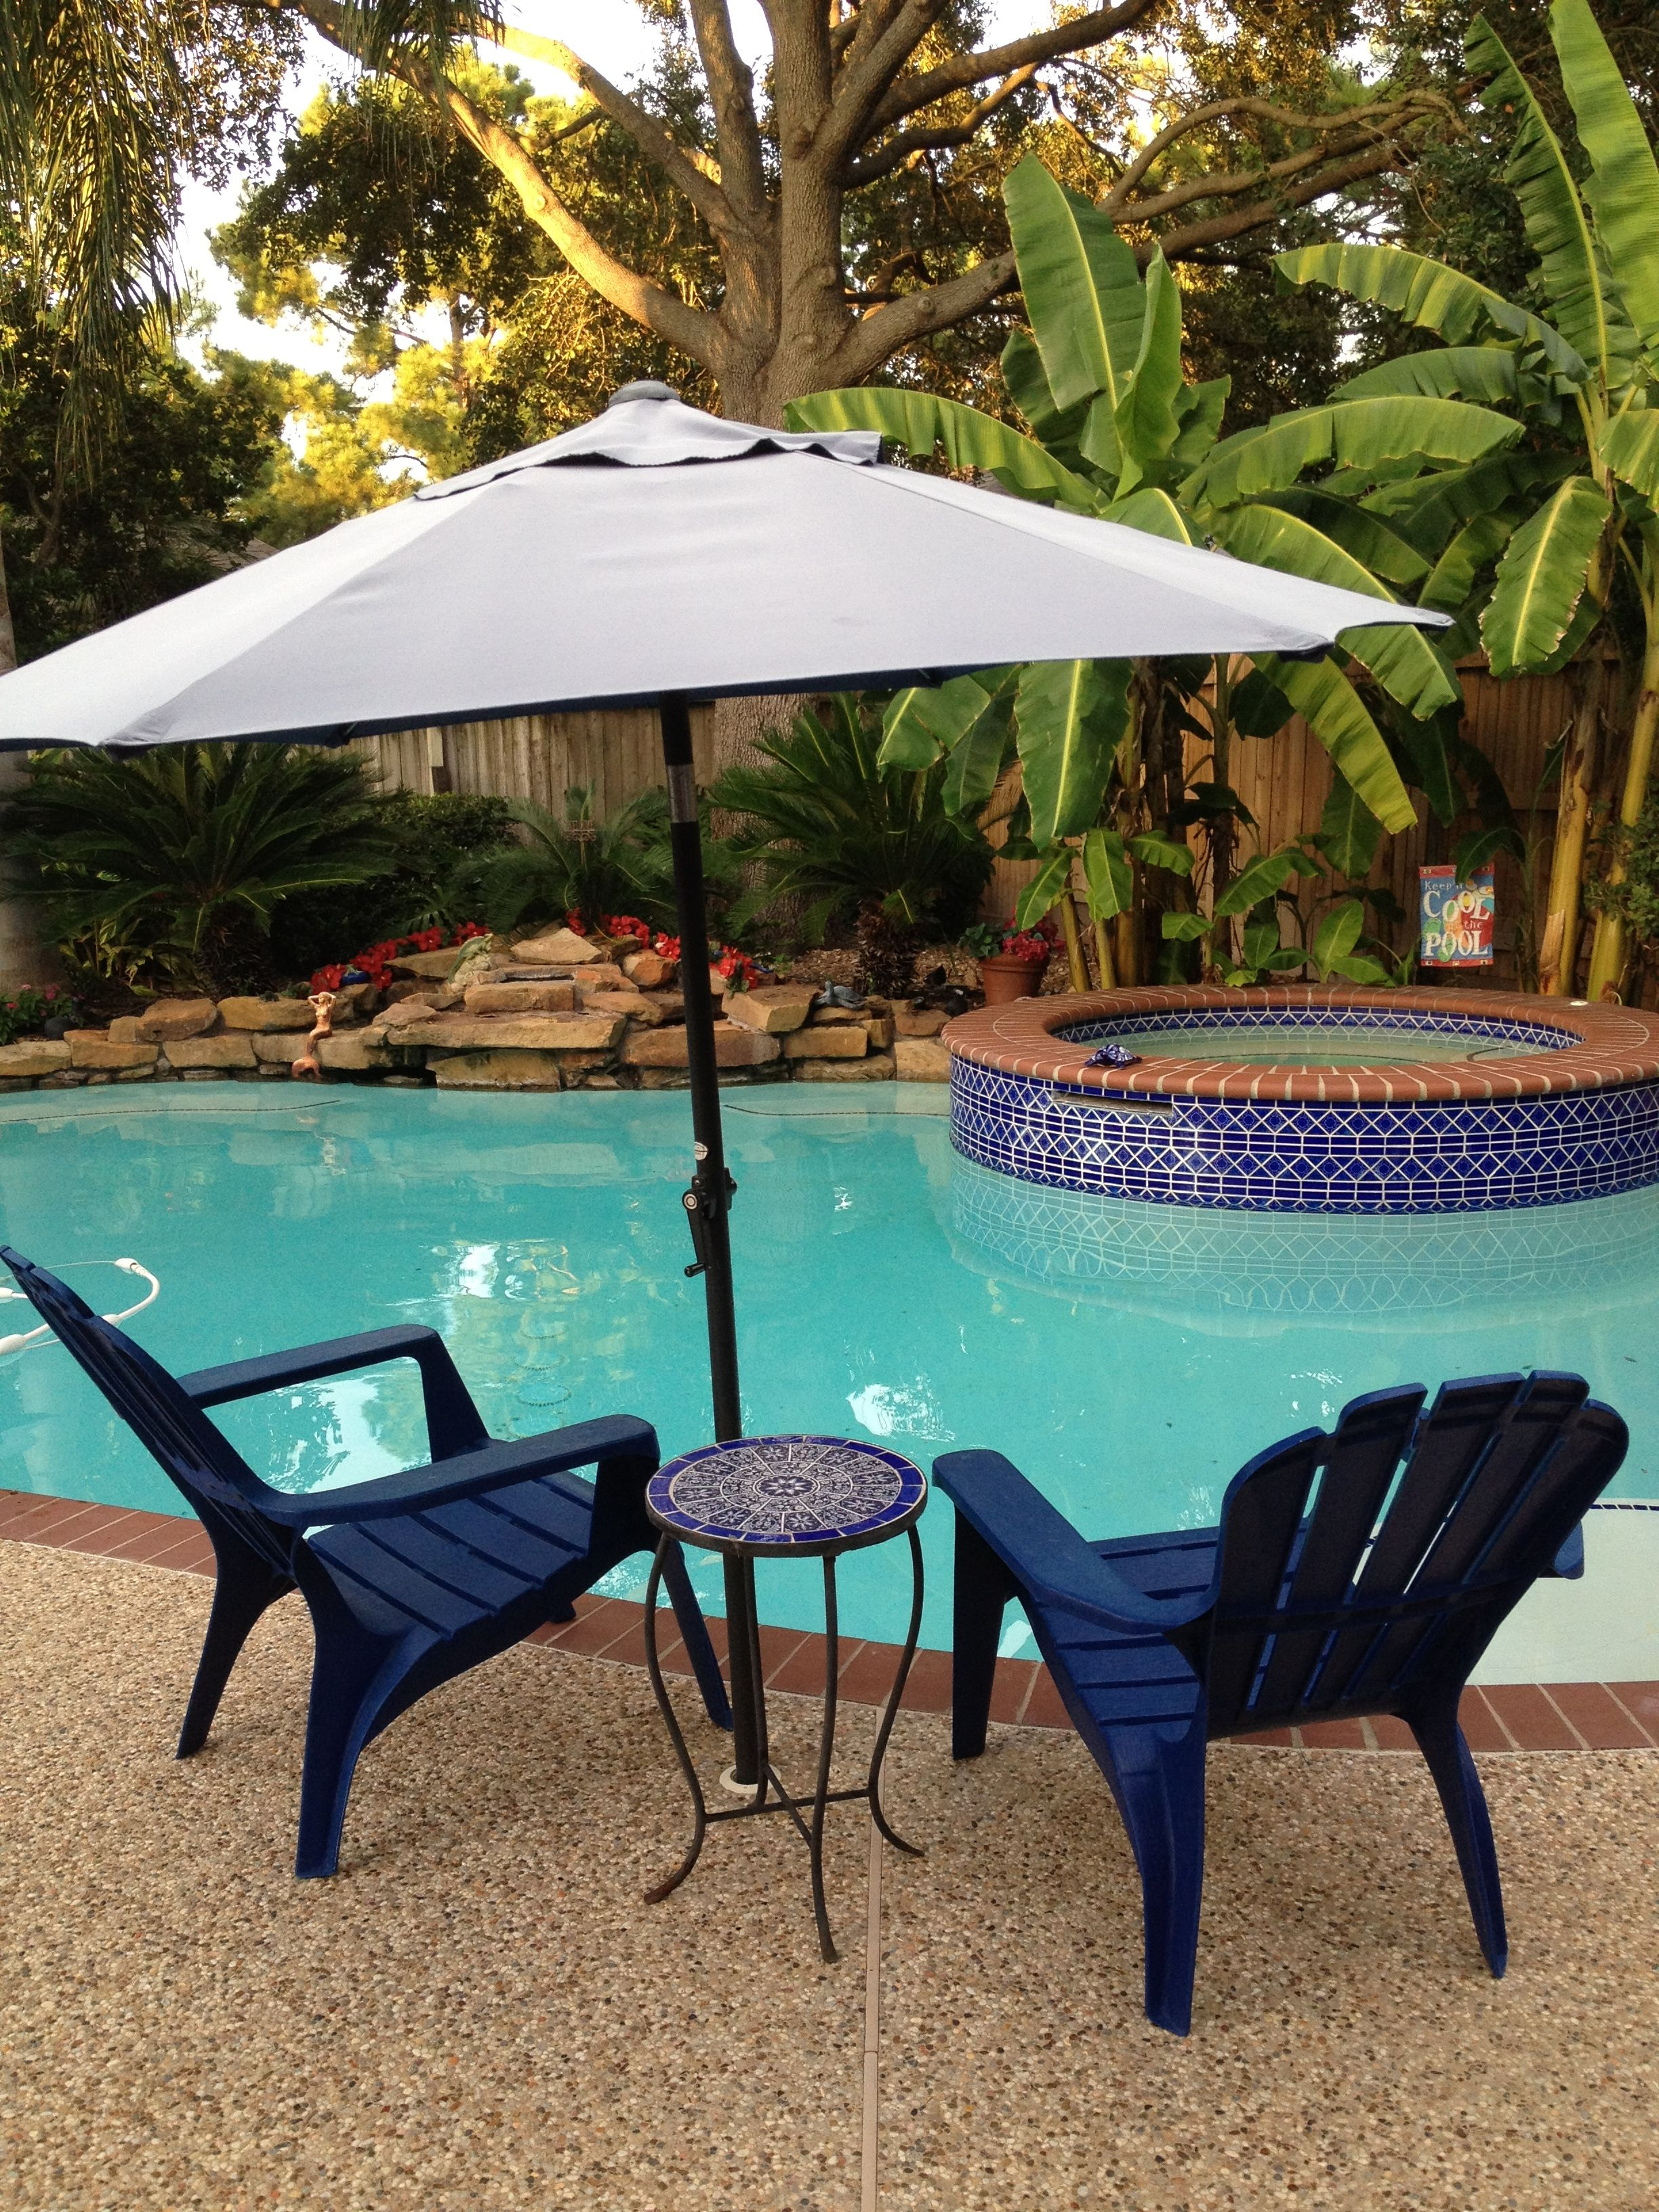 Stick A Patio Umbrella In The Hole For A Pool Volleyball Net You Never Use Backyard Pool Pool Volleyball Net Patio Umbrella